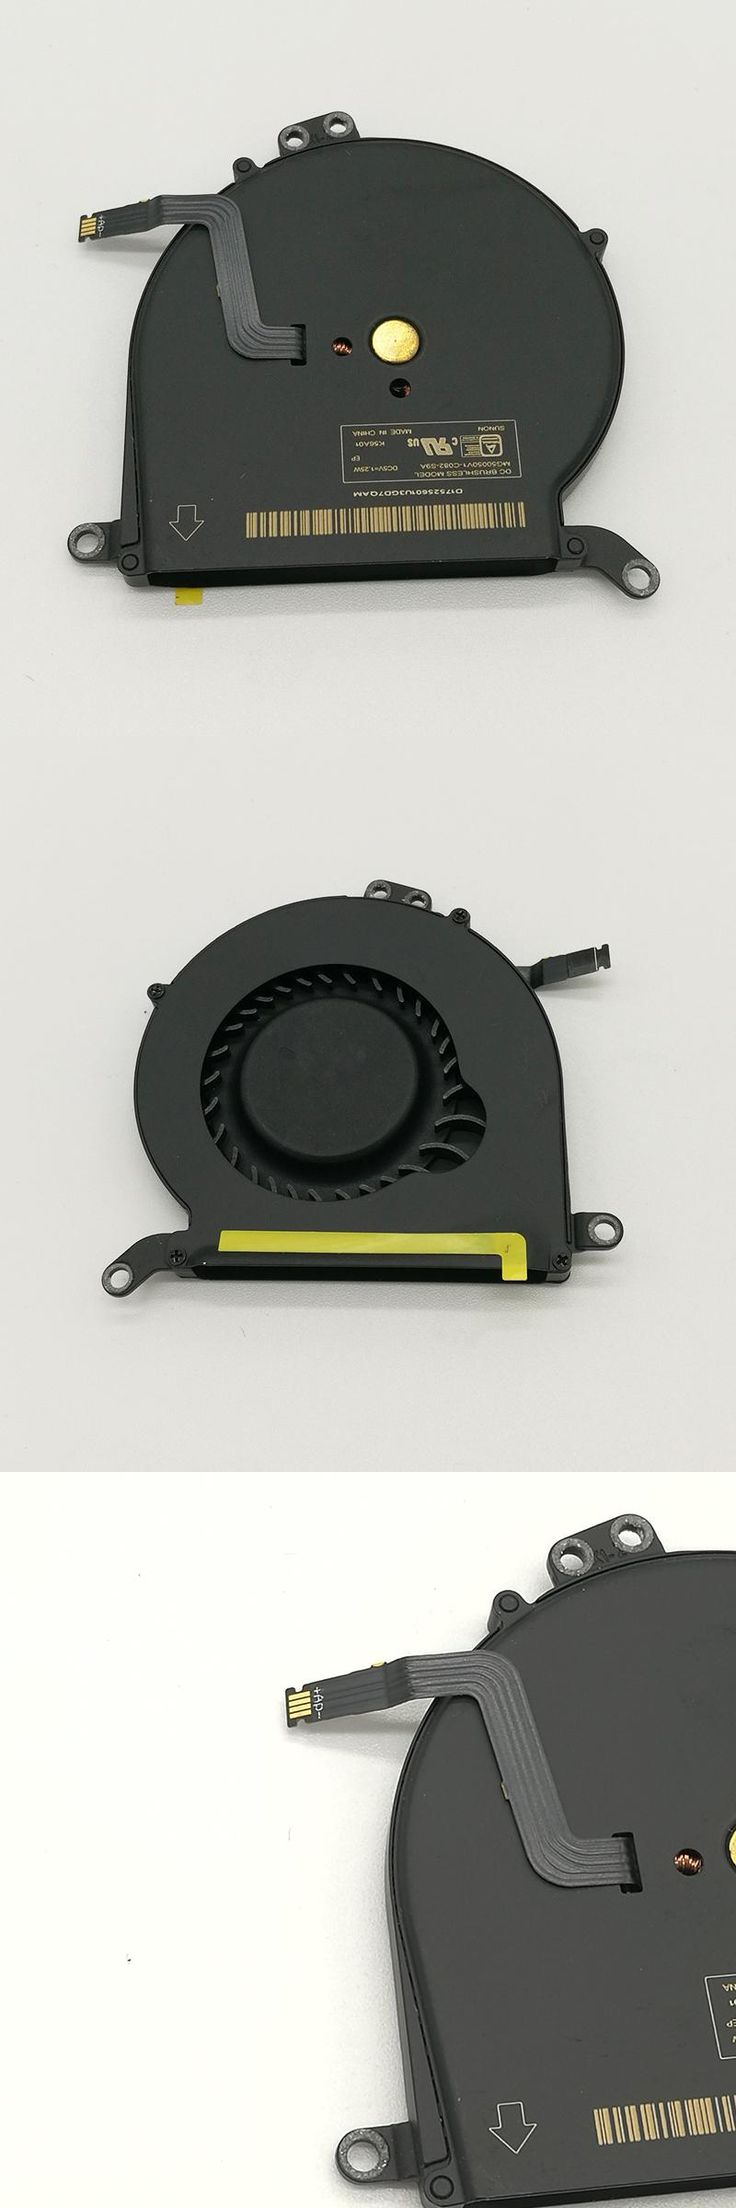 """[Visit to Buy] Brand New Air-cooled Laptop CPU Cooler Cooling Fan MG50050V1-C082-S9A For Macbook Air 13"""" A1369 2010 2011 A1466 2012-2015 #Advertisement"""